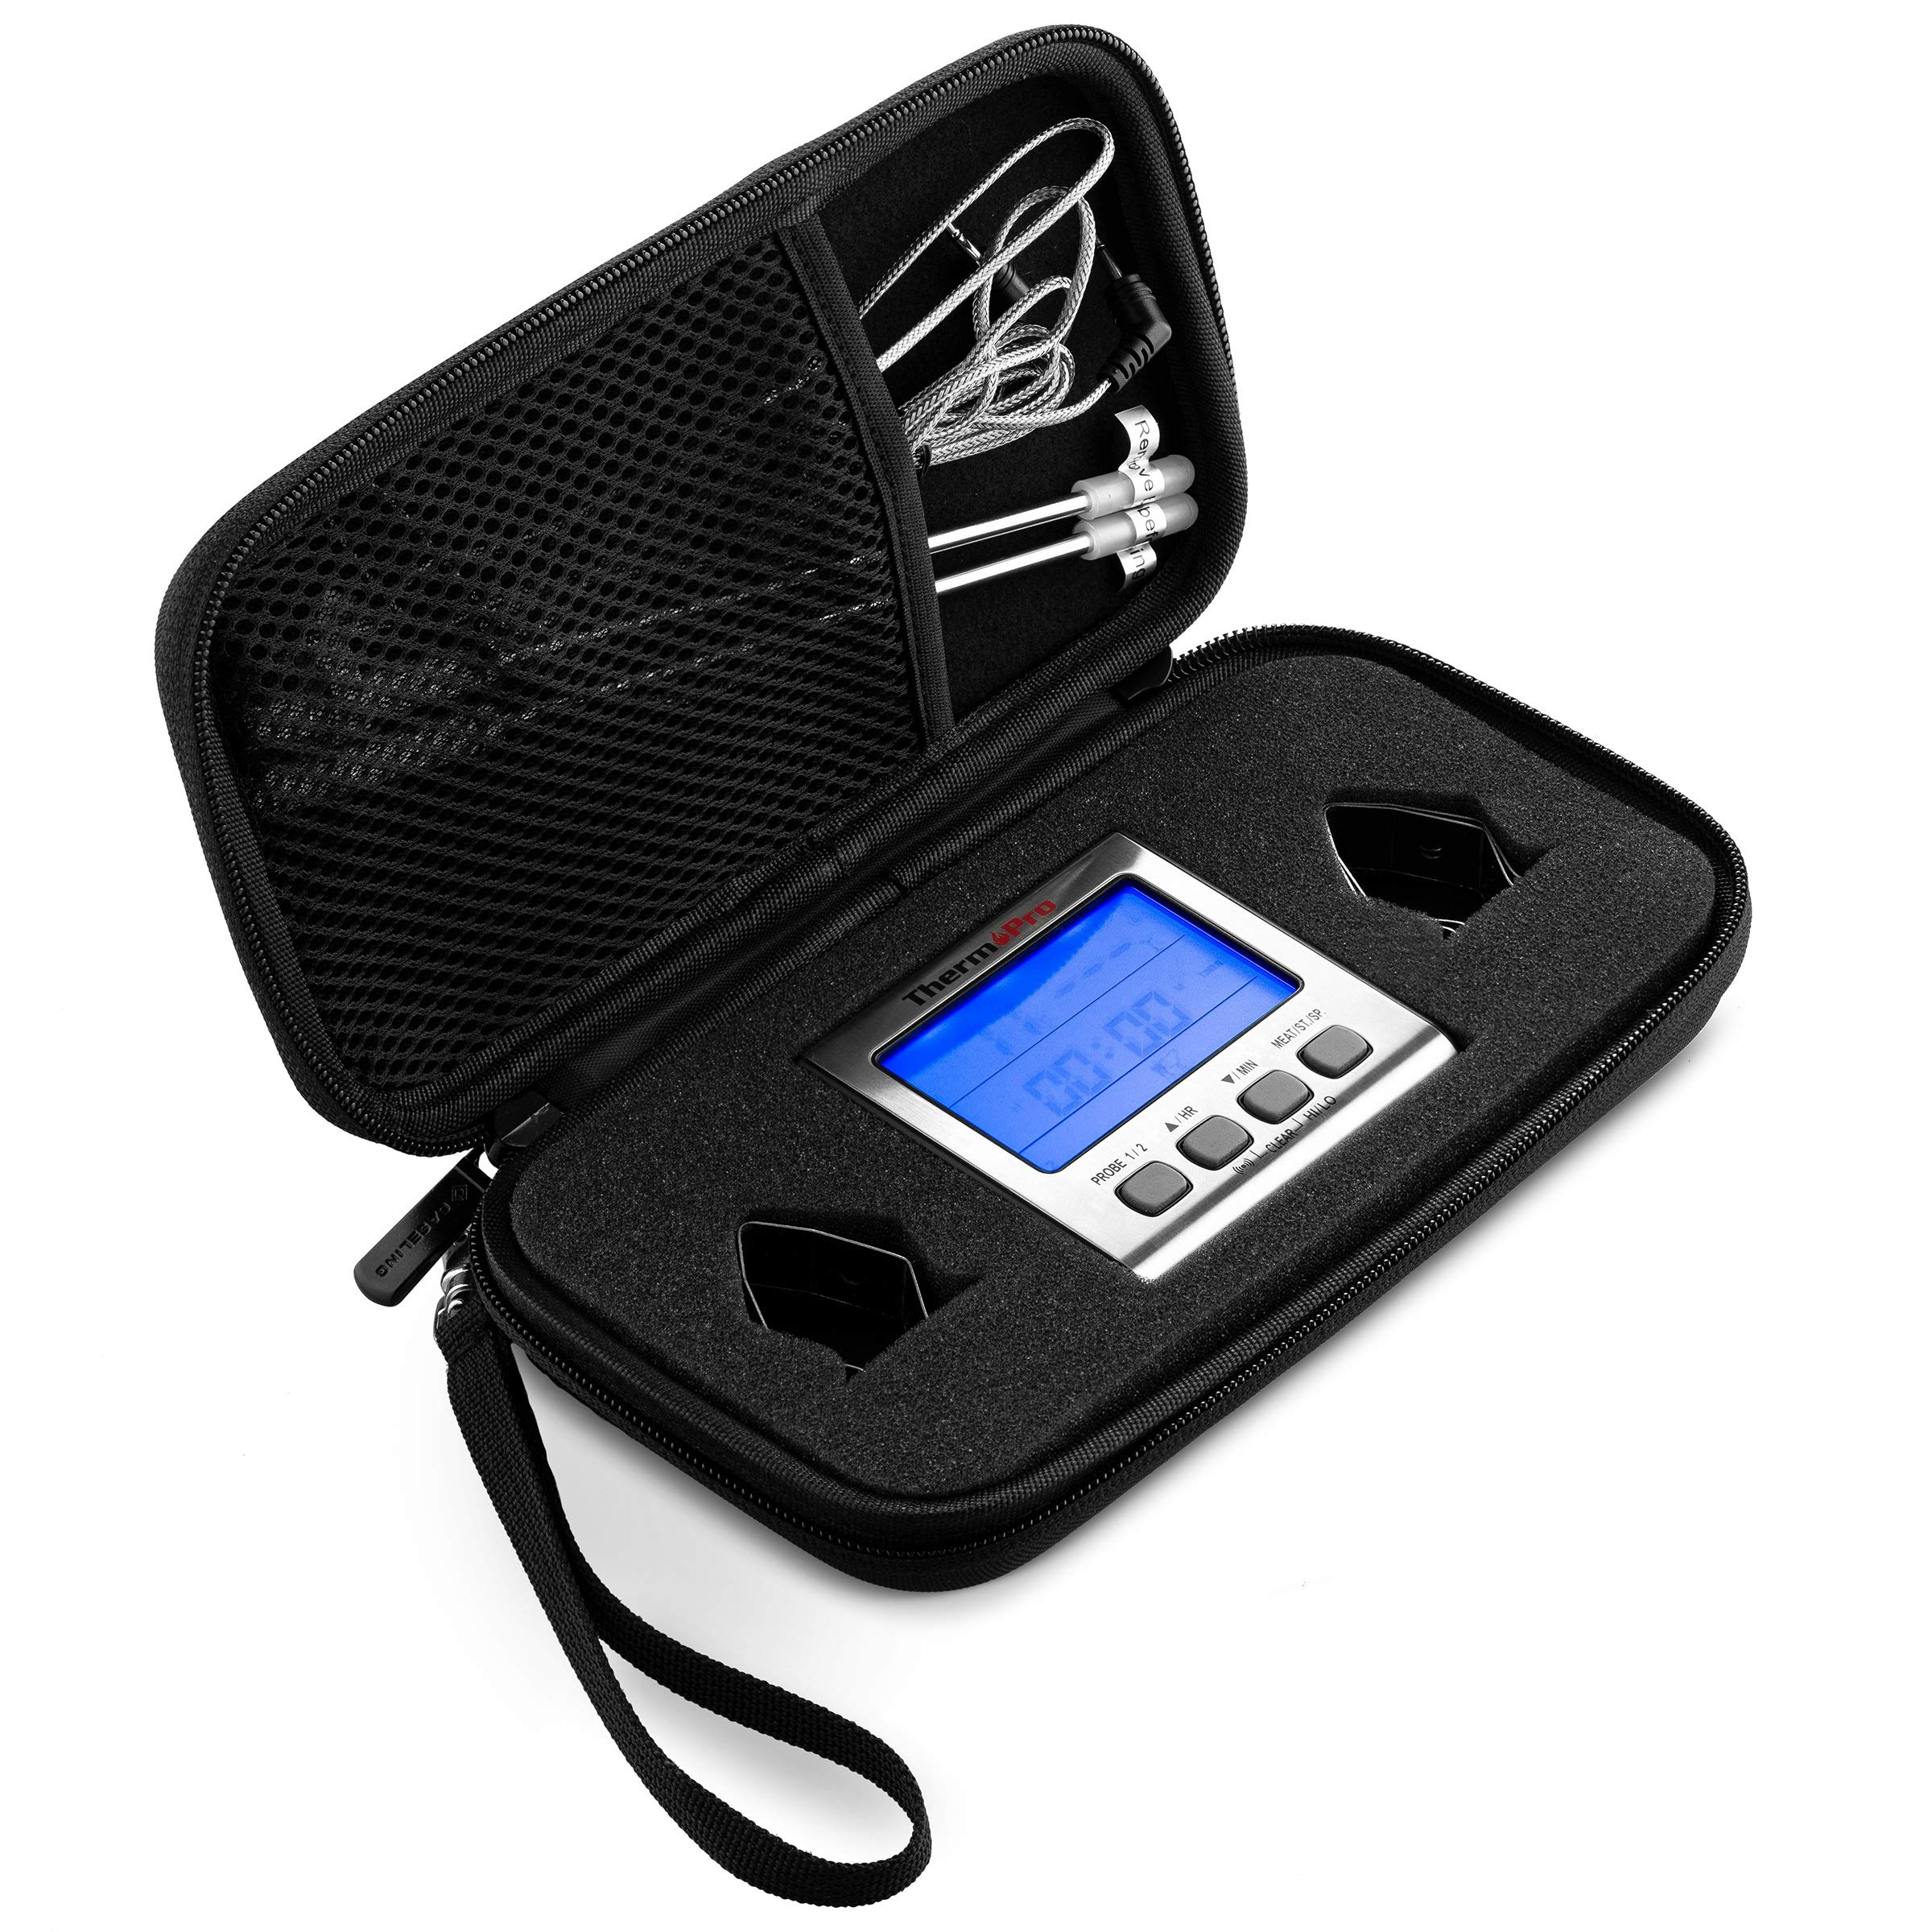 Caseling Hard Case Fits ThermoPro TP17 Dual Probe Digital Cooking Meat Thermometer Food Grill Thermometer